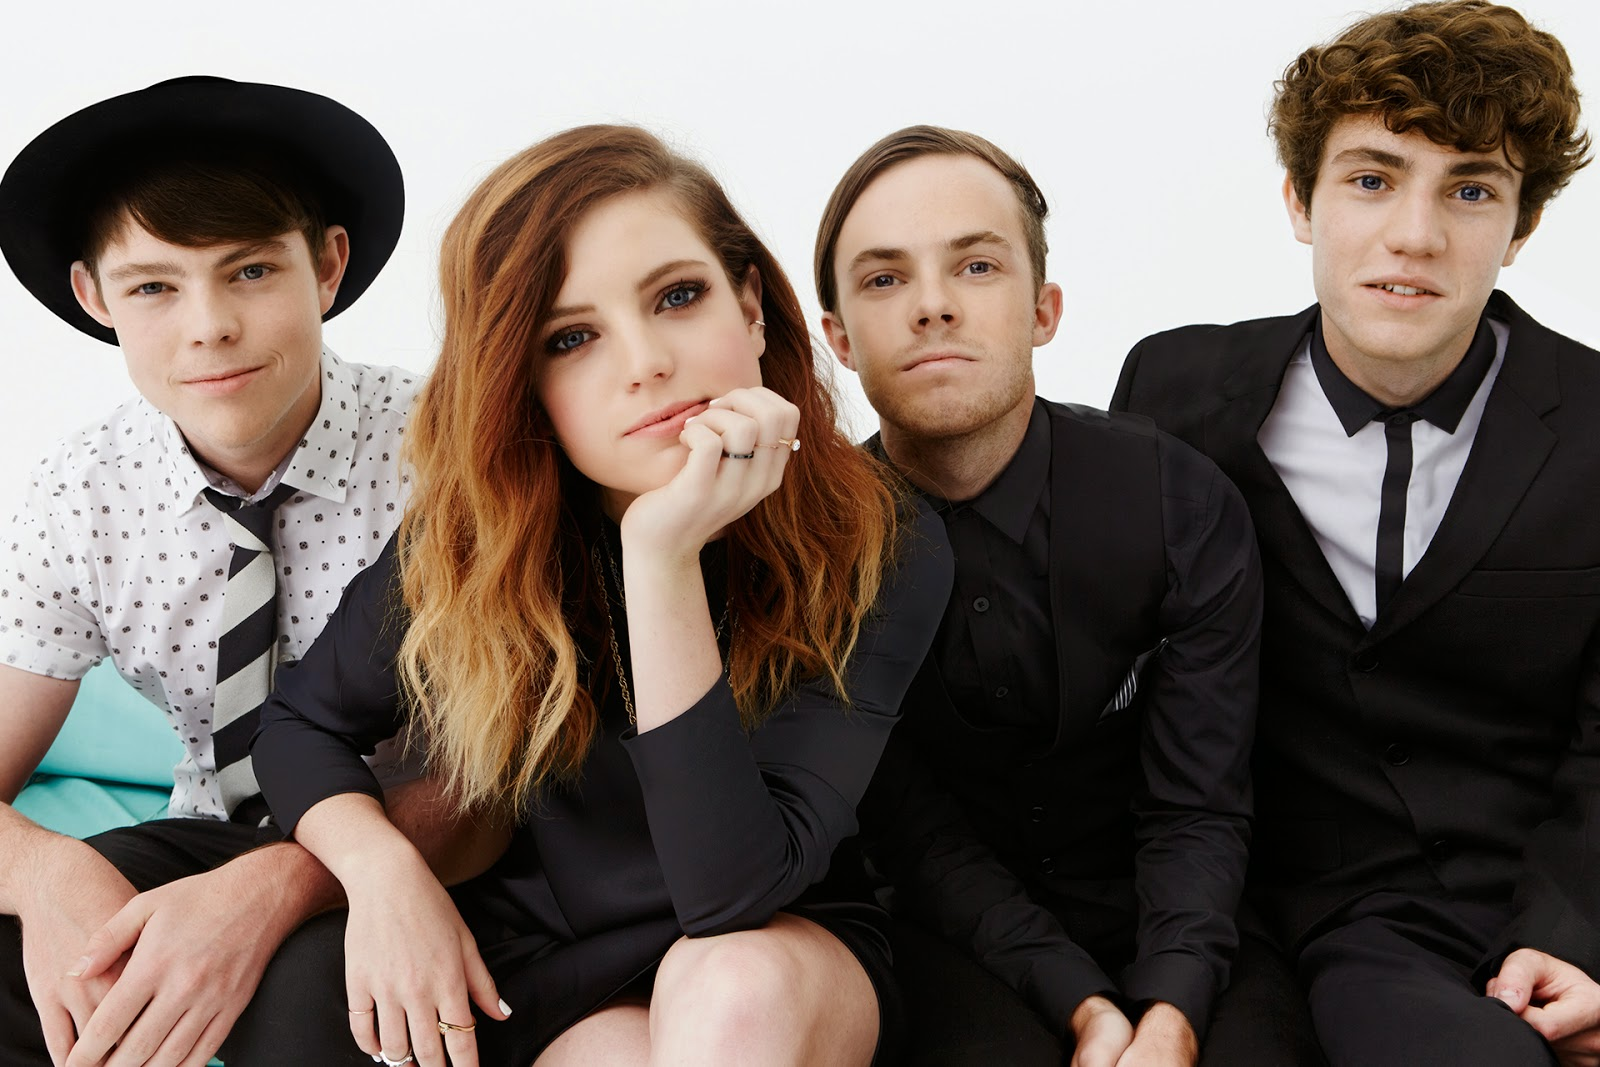 Echosmith's first concert in Singapore this August